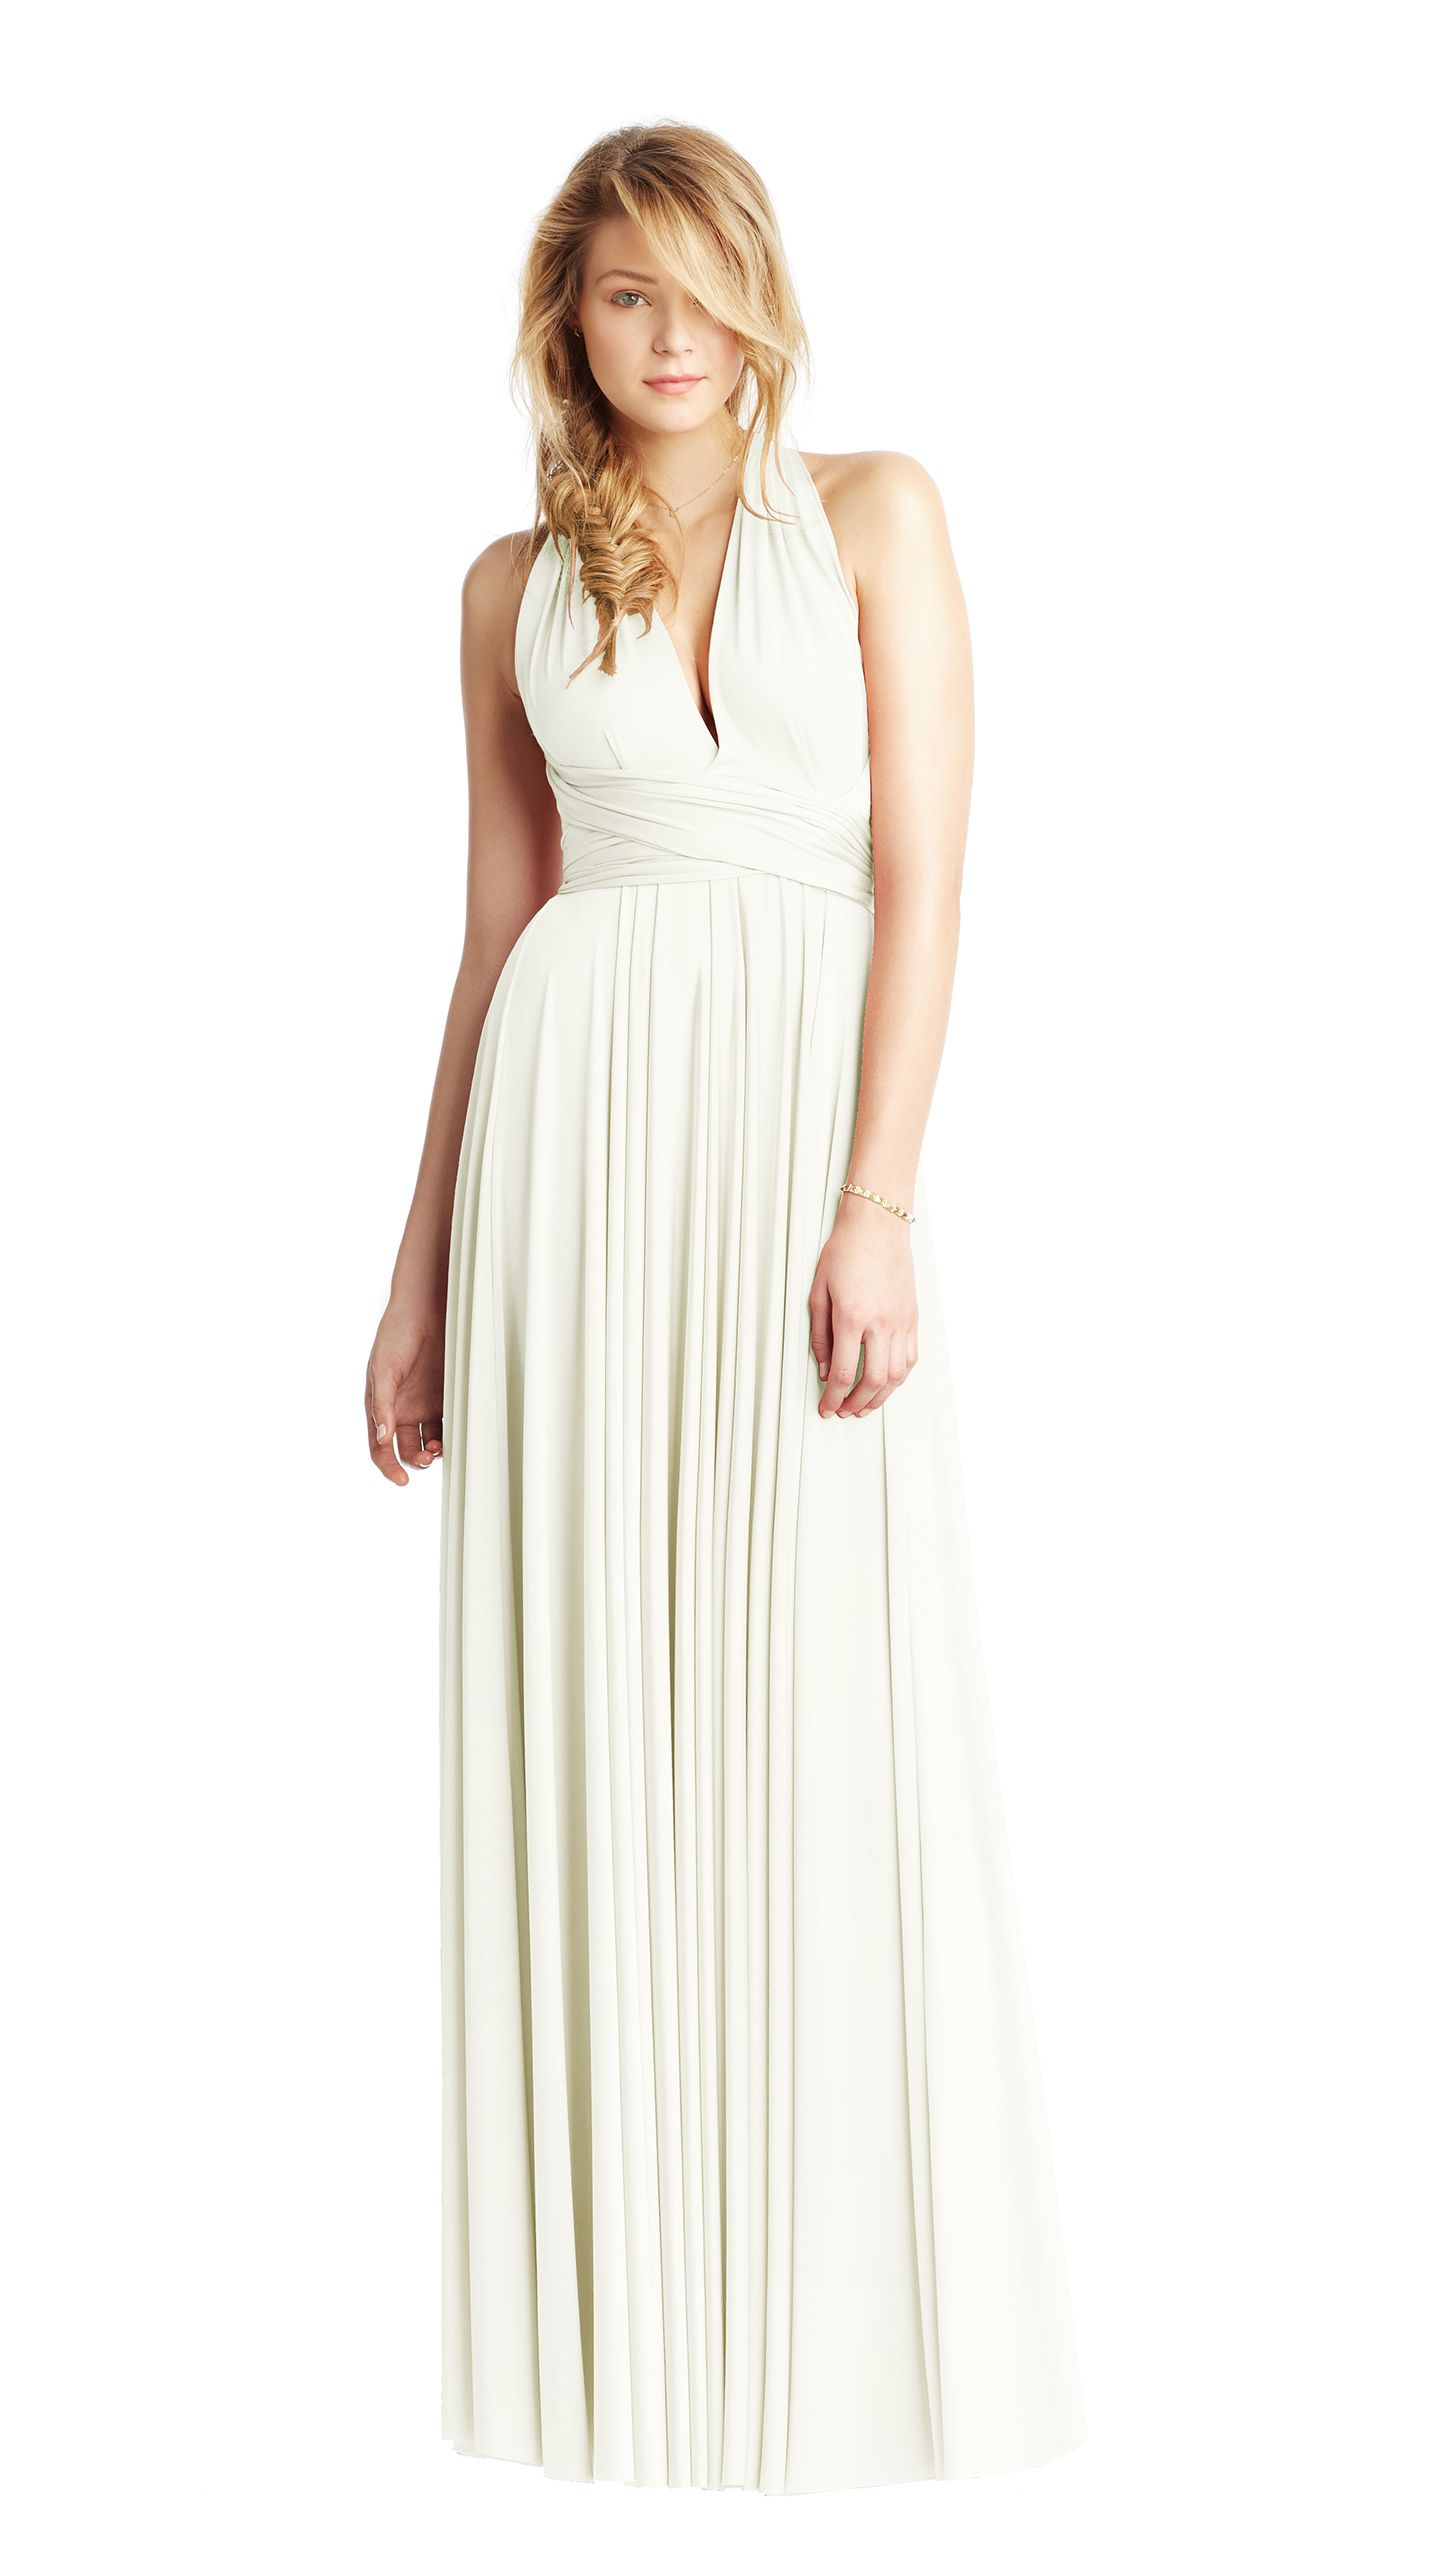 Purity (white/ivory) twobirds ballgown | Multiway, convertible wrap ...